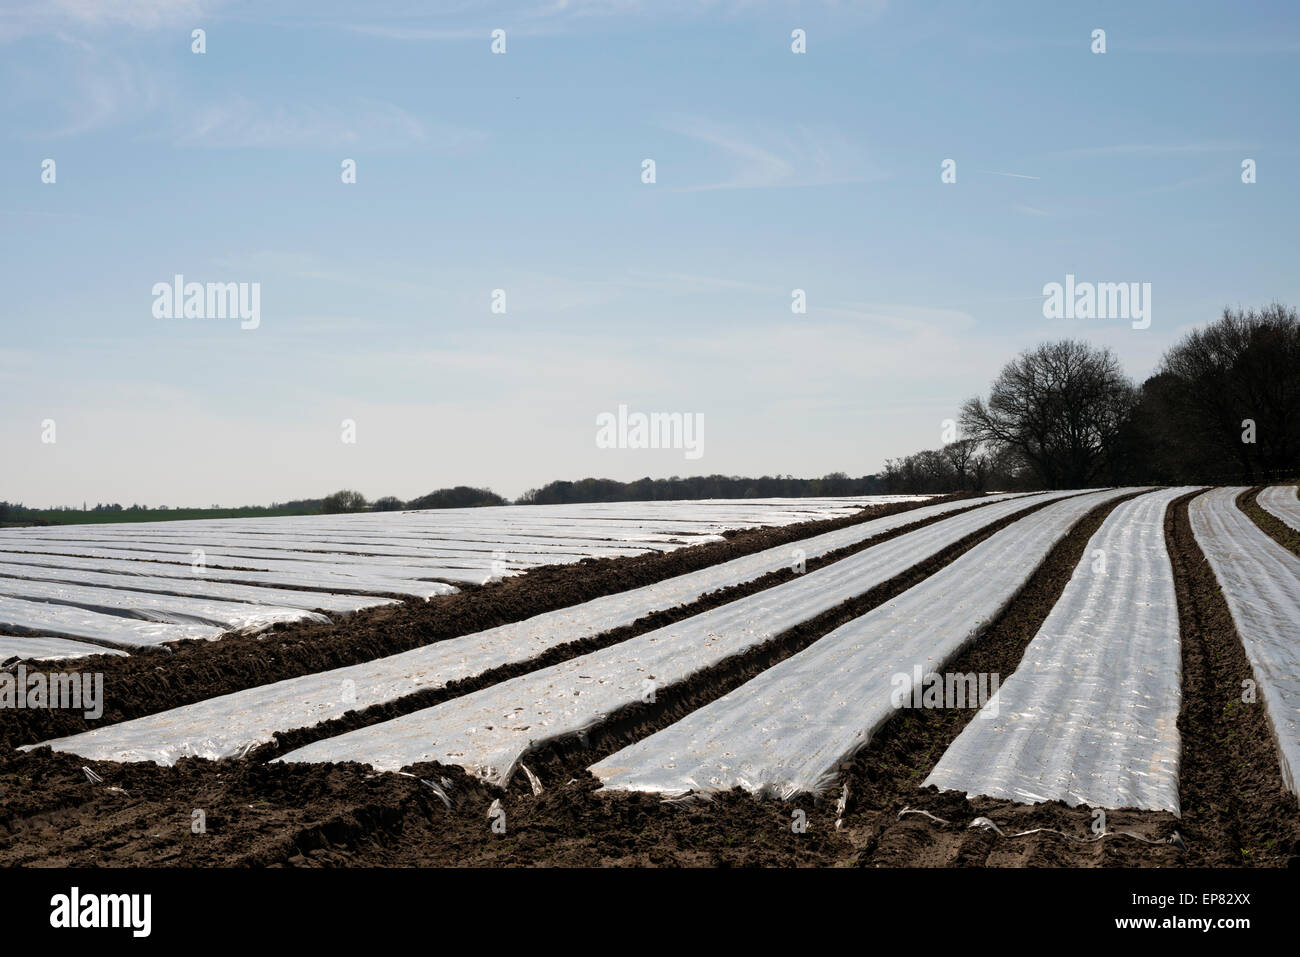 Carrots grown under plastic protection coverings Stock Photo